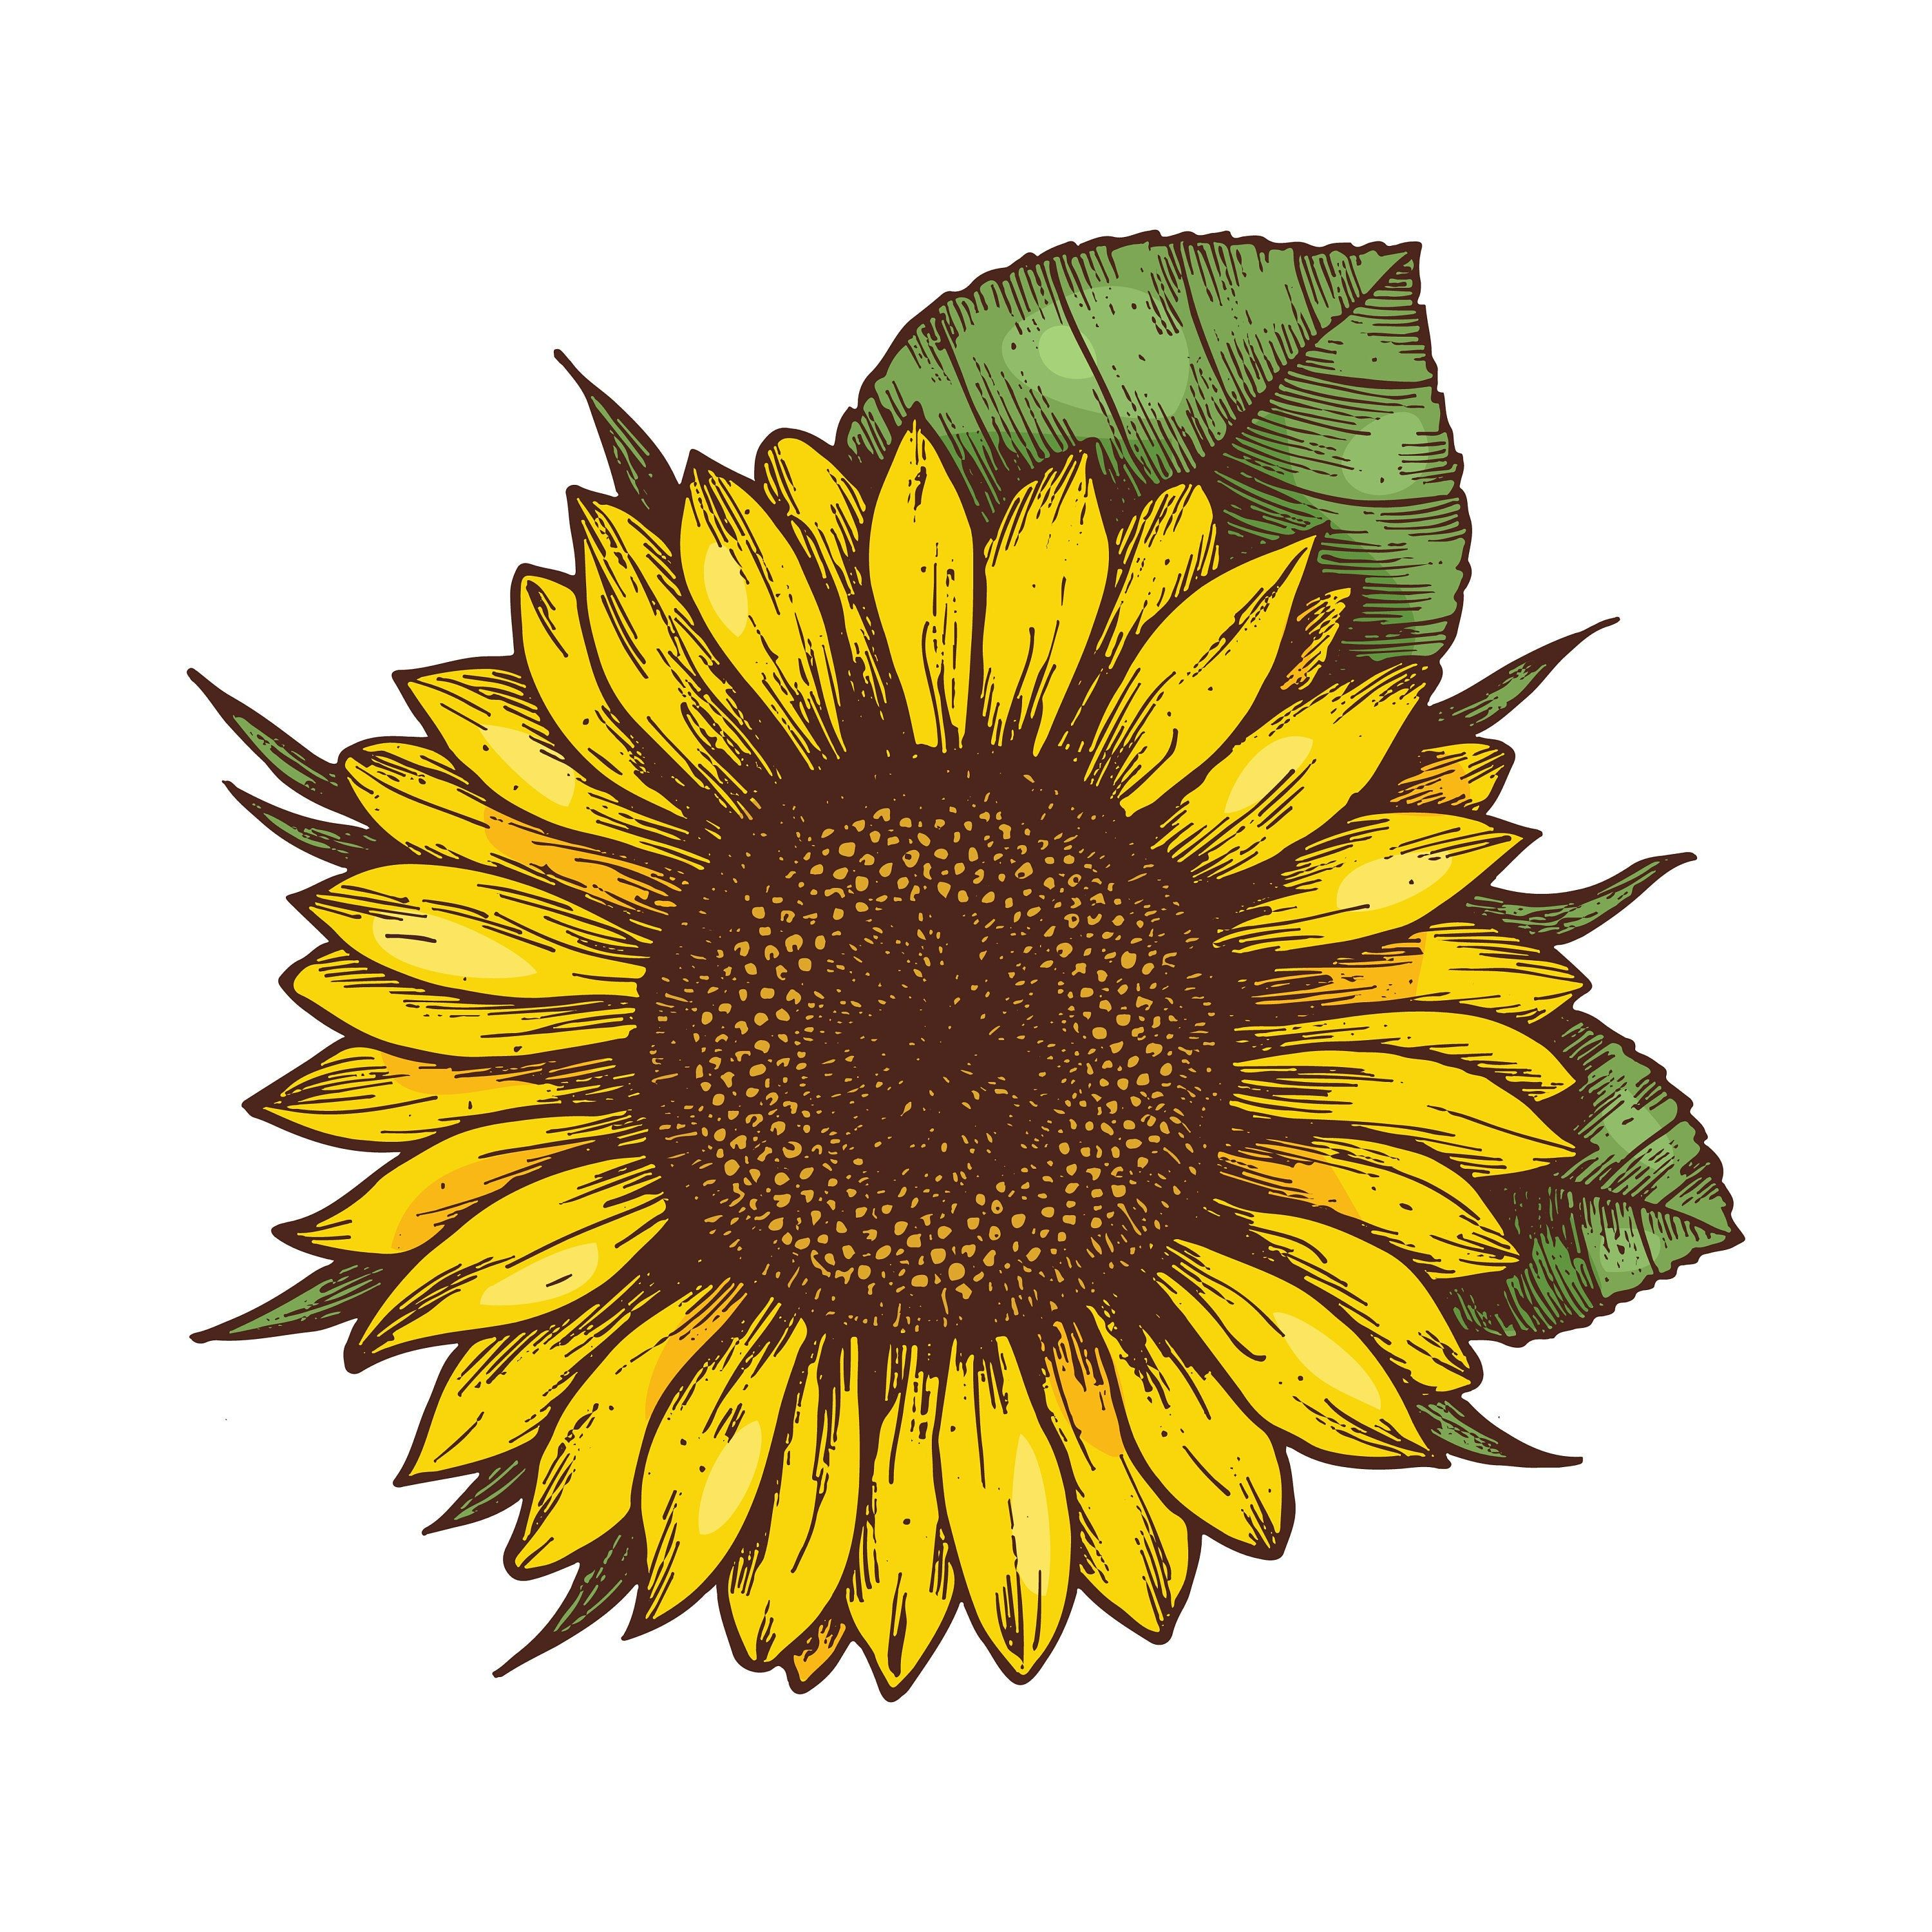 SunFlower PNG File, T-Shirt Graphics, Sunflower Clipart, Spring Flower PNG,  Summer Flower PNG in 2021   Sunflower drawing, Sunflower illustration, Sunflower  clipart